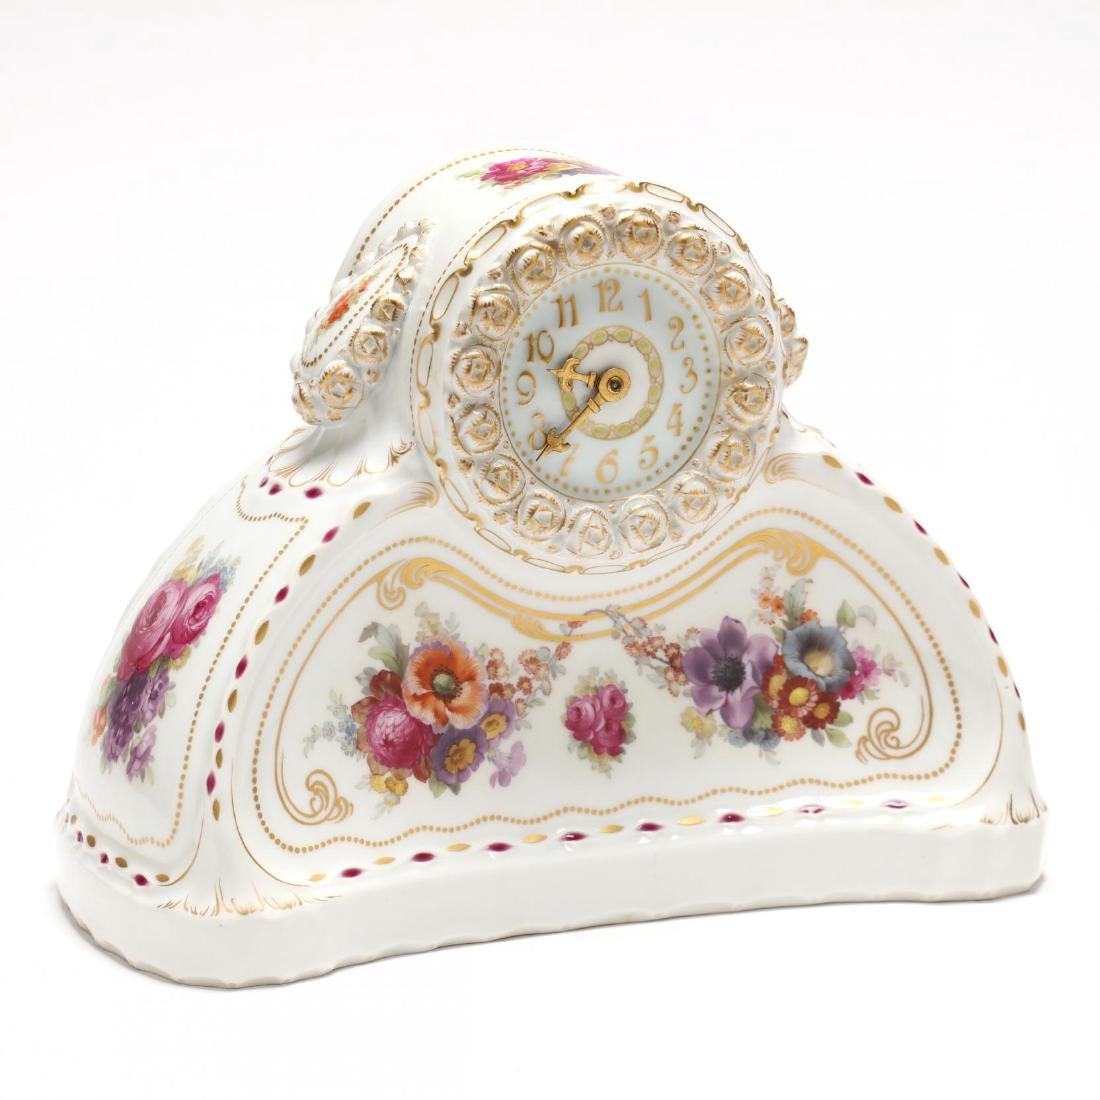 KPM, Porcelain Mantle Clock